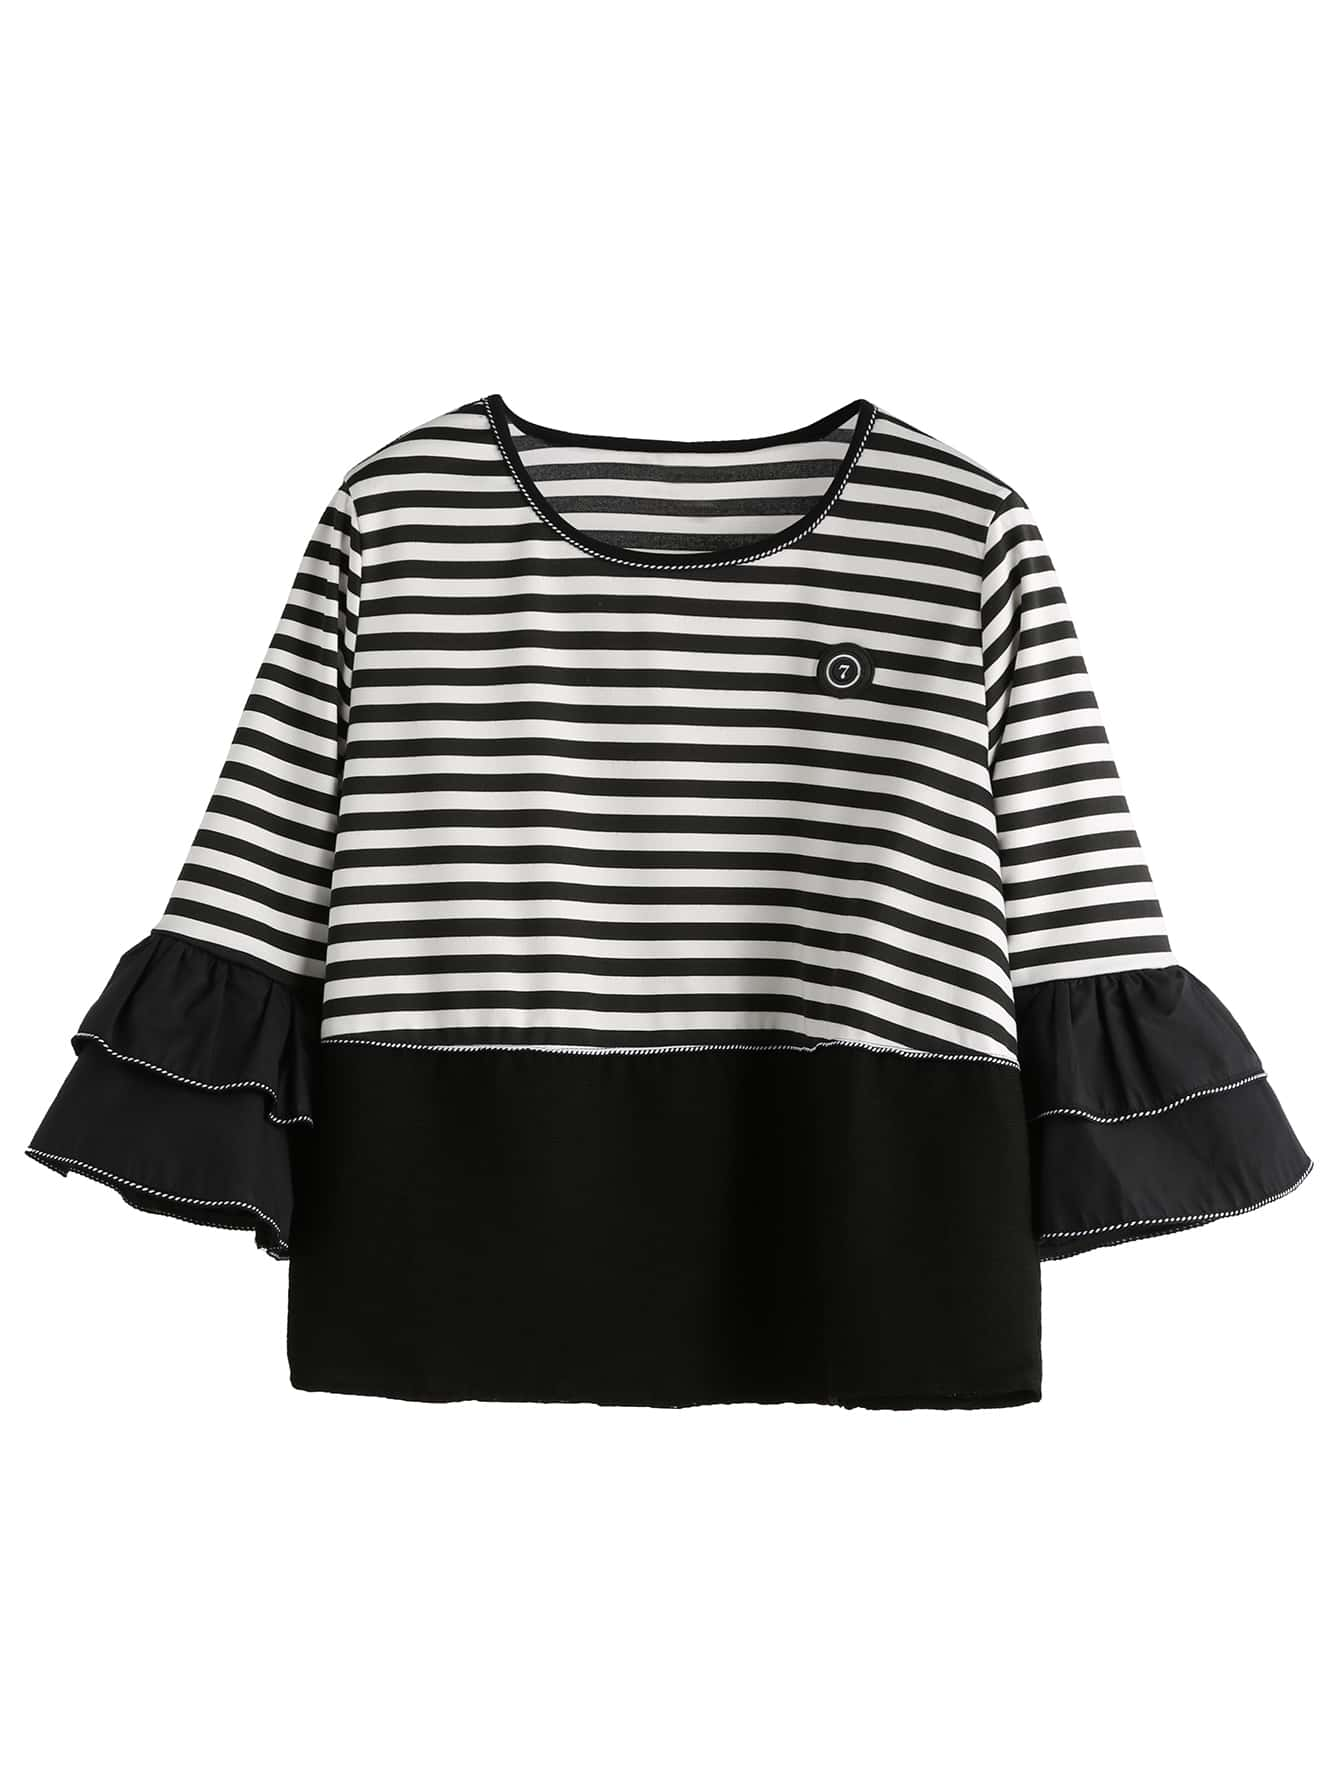 Contrast Striped Ruffle Cuff T-shirtContrast Striped Ruffle Cuff T-shirt<br><br>color: Black and White<br>size: one-size